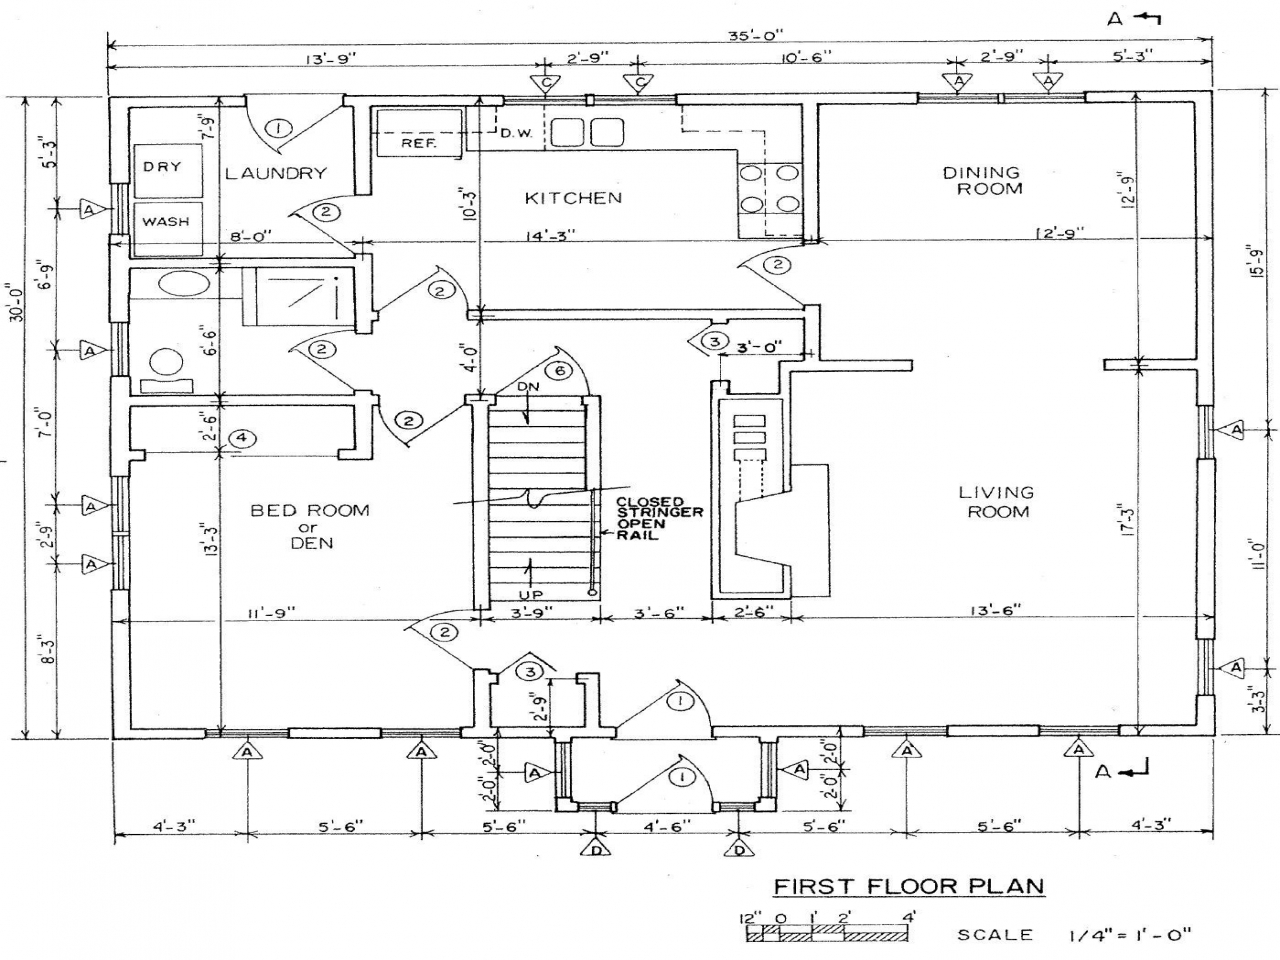 Ranch House Plan Autocad on ada approved house plans, drawing house plans, shake house plans, open house plans, step house plans, sims 4 house plans, amazing house plans, beach house plans, craftsman house plans, 3d interior house plans, bim house plans, landscape house plans, revit house plans, cottage house plans, 3d view house plans, bungalow house plans, sq ft. house plans, lowes tiny house plans, 2 story 4 bedroom house plans, outlook house plans,